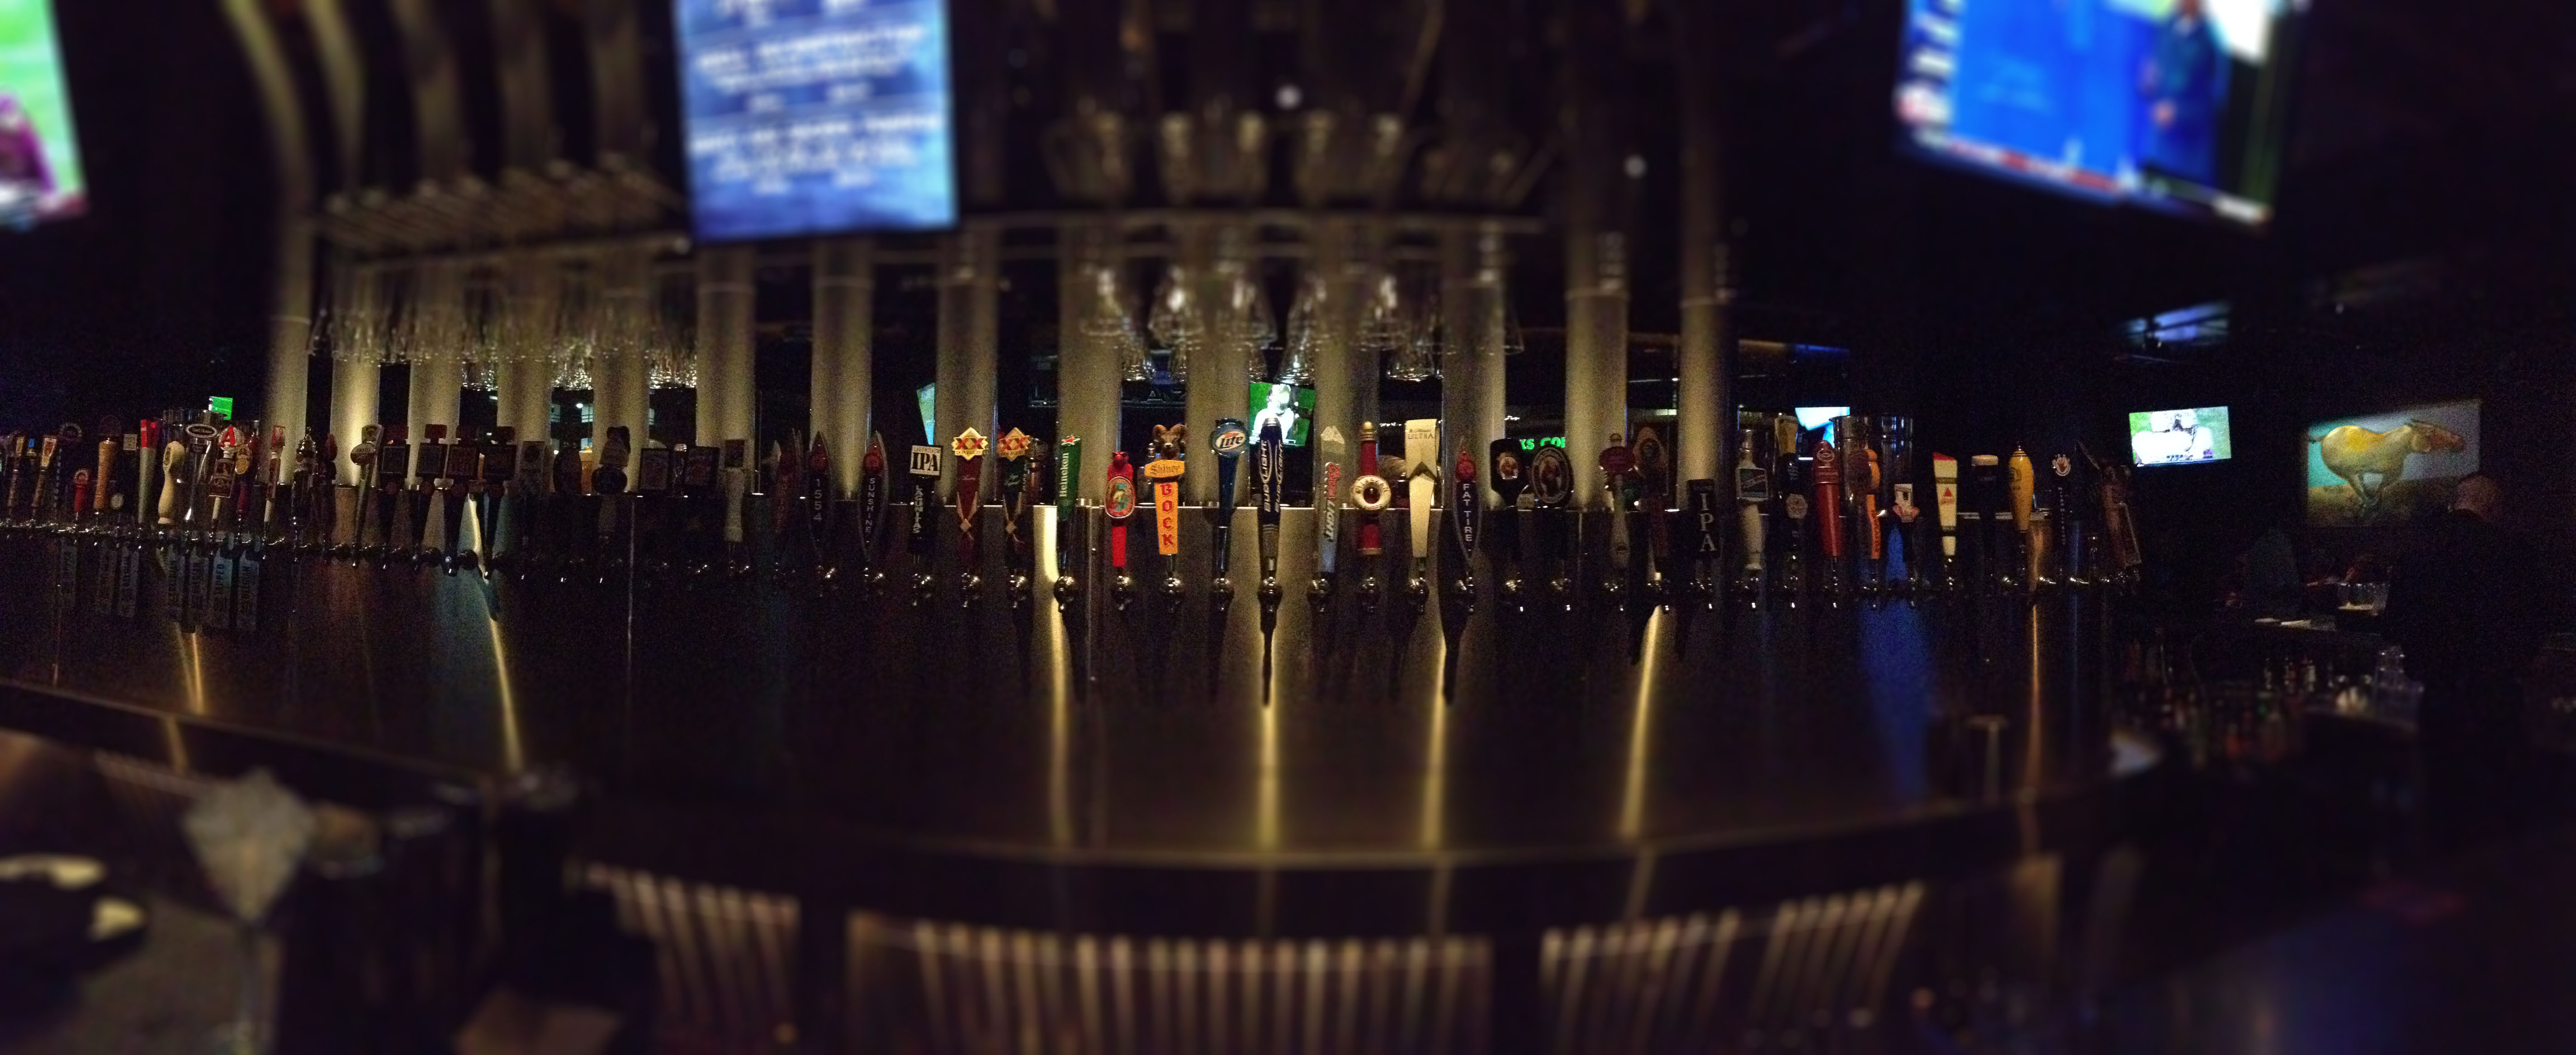 beer-pano-tilt-shift